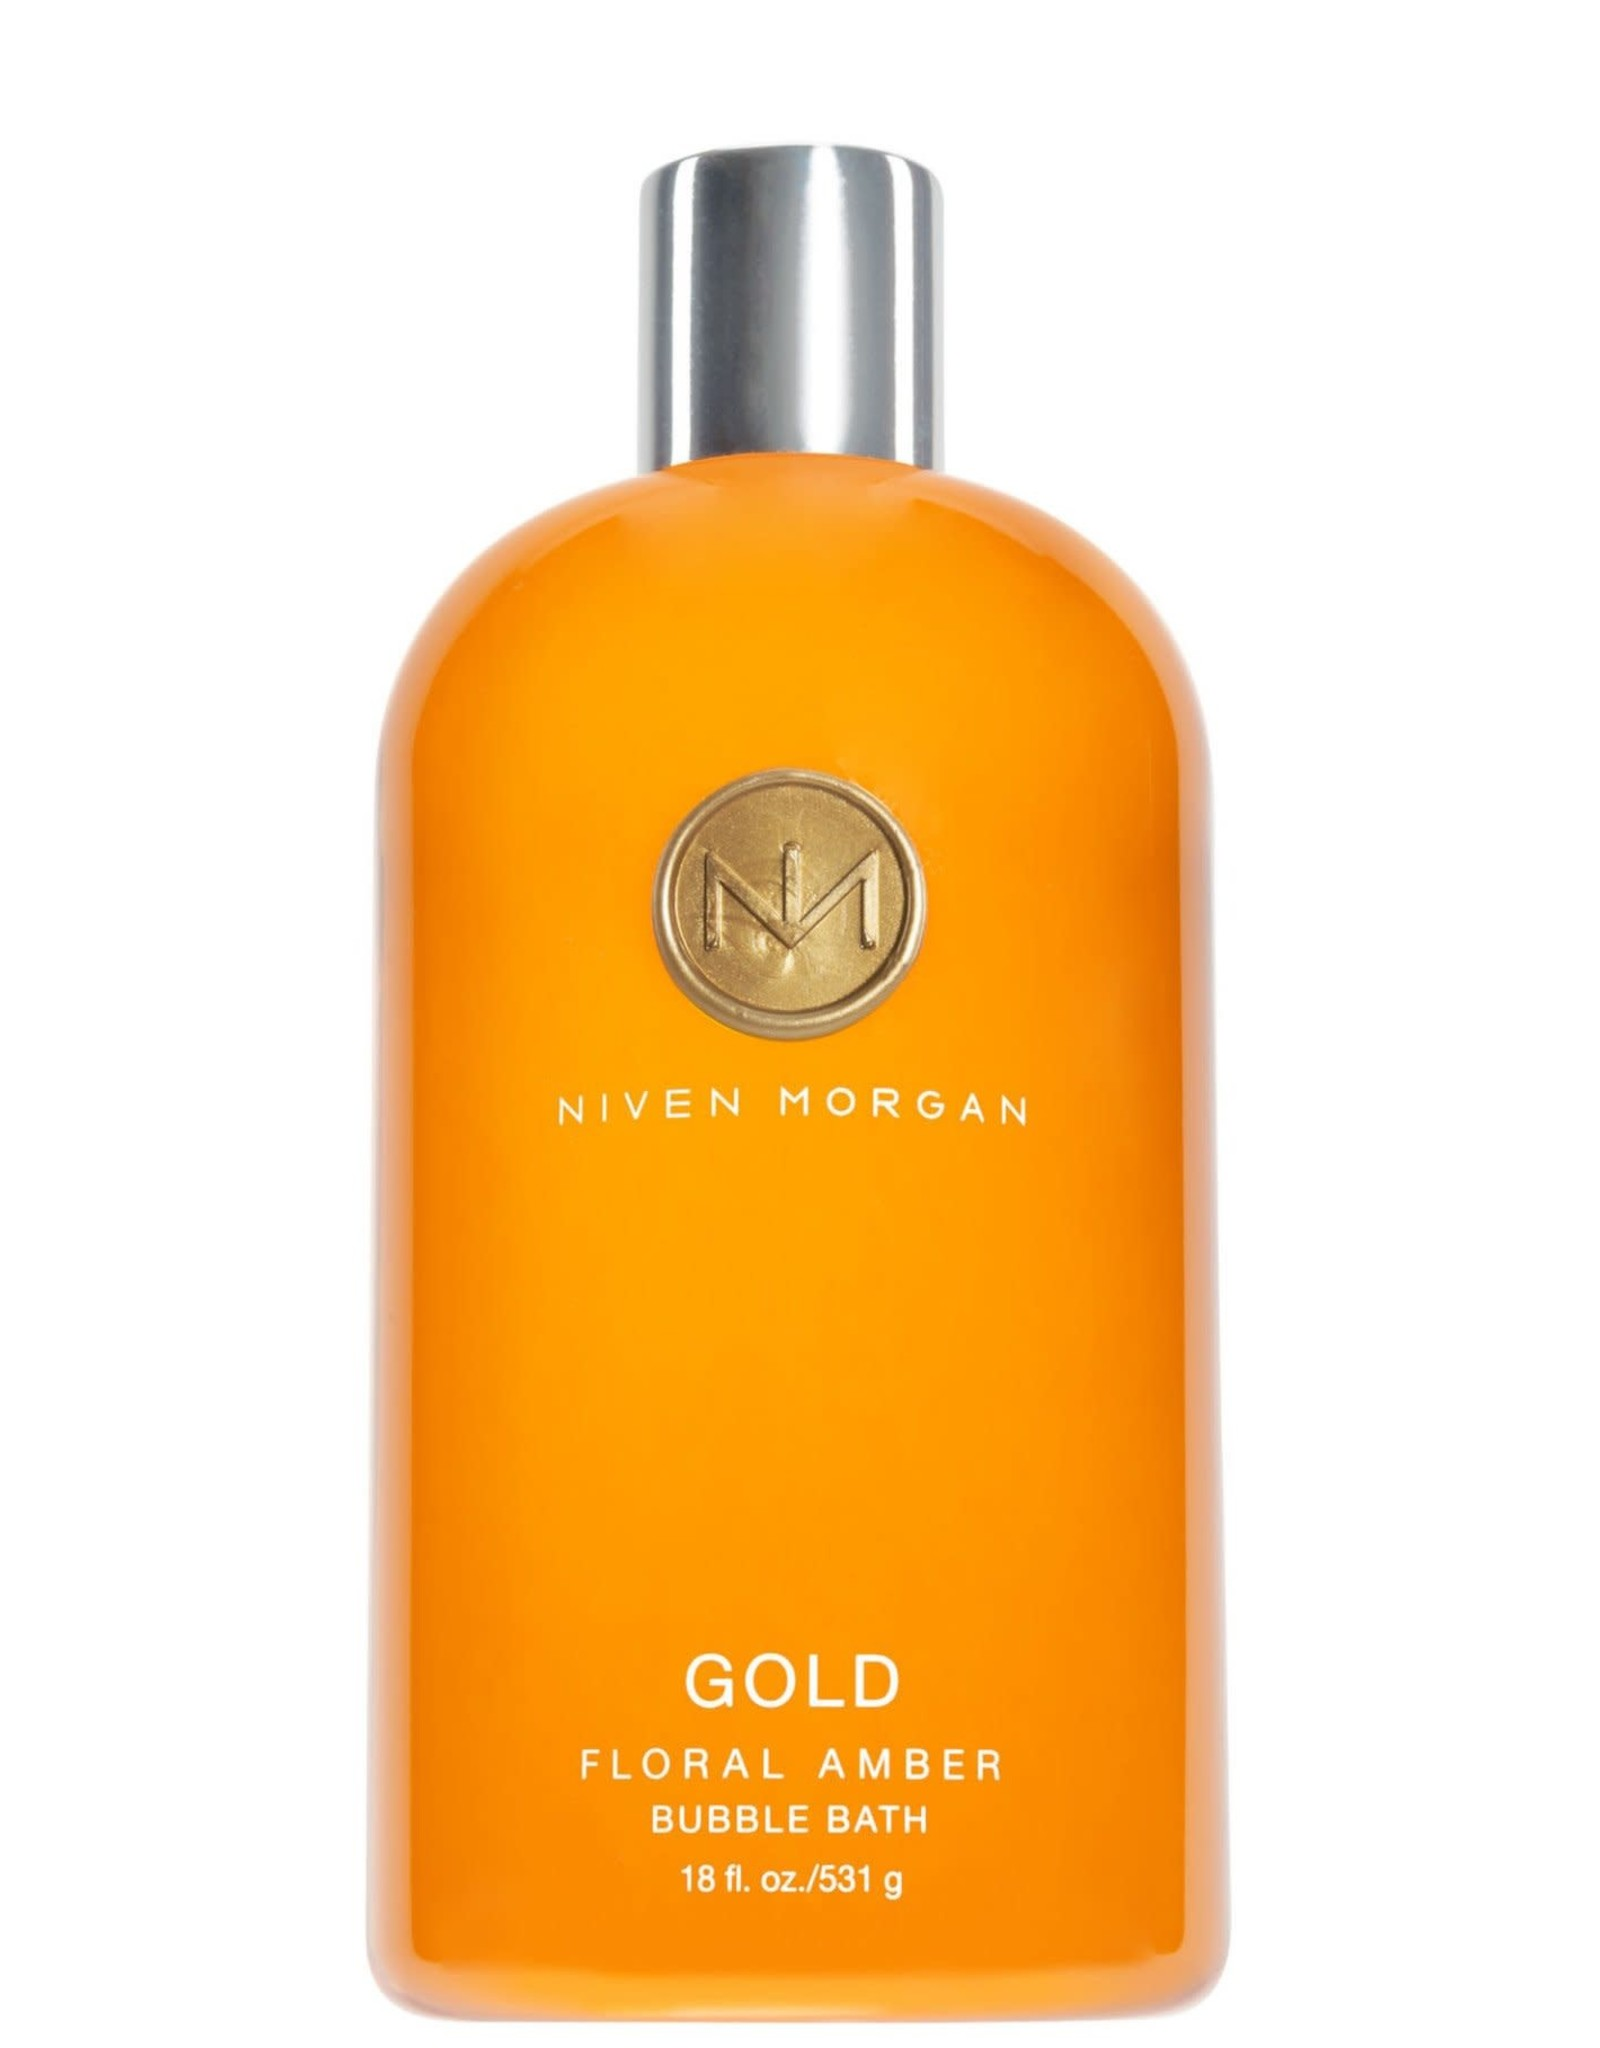 NM Gold Bubble Bath